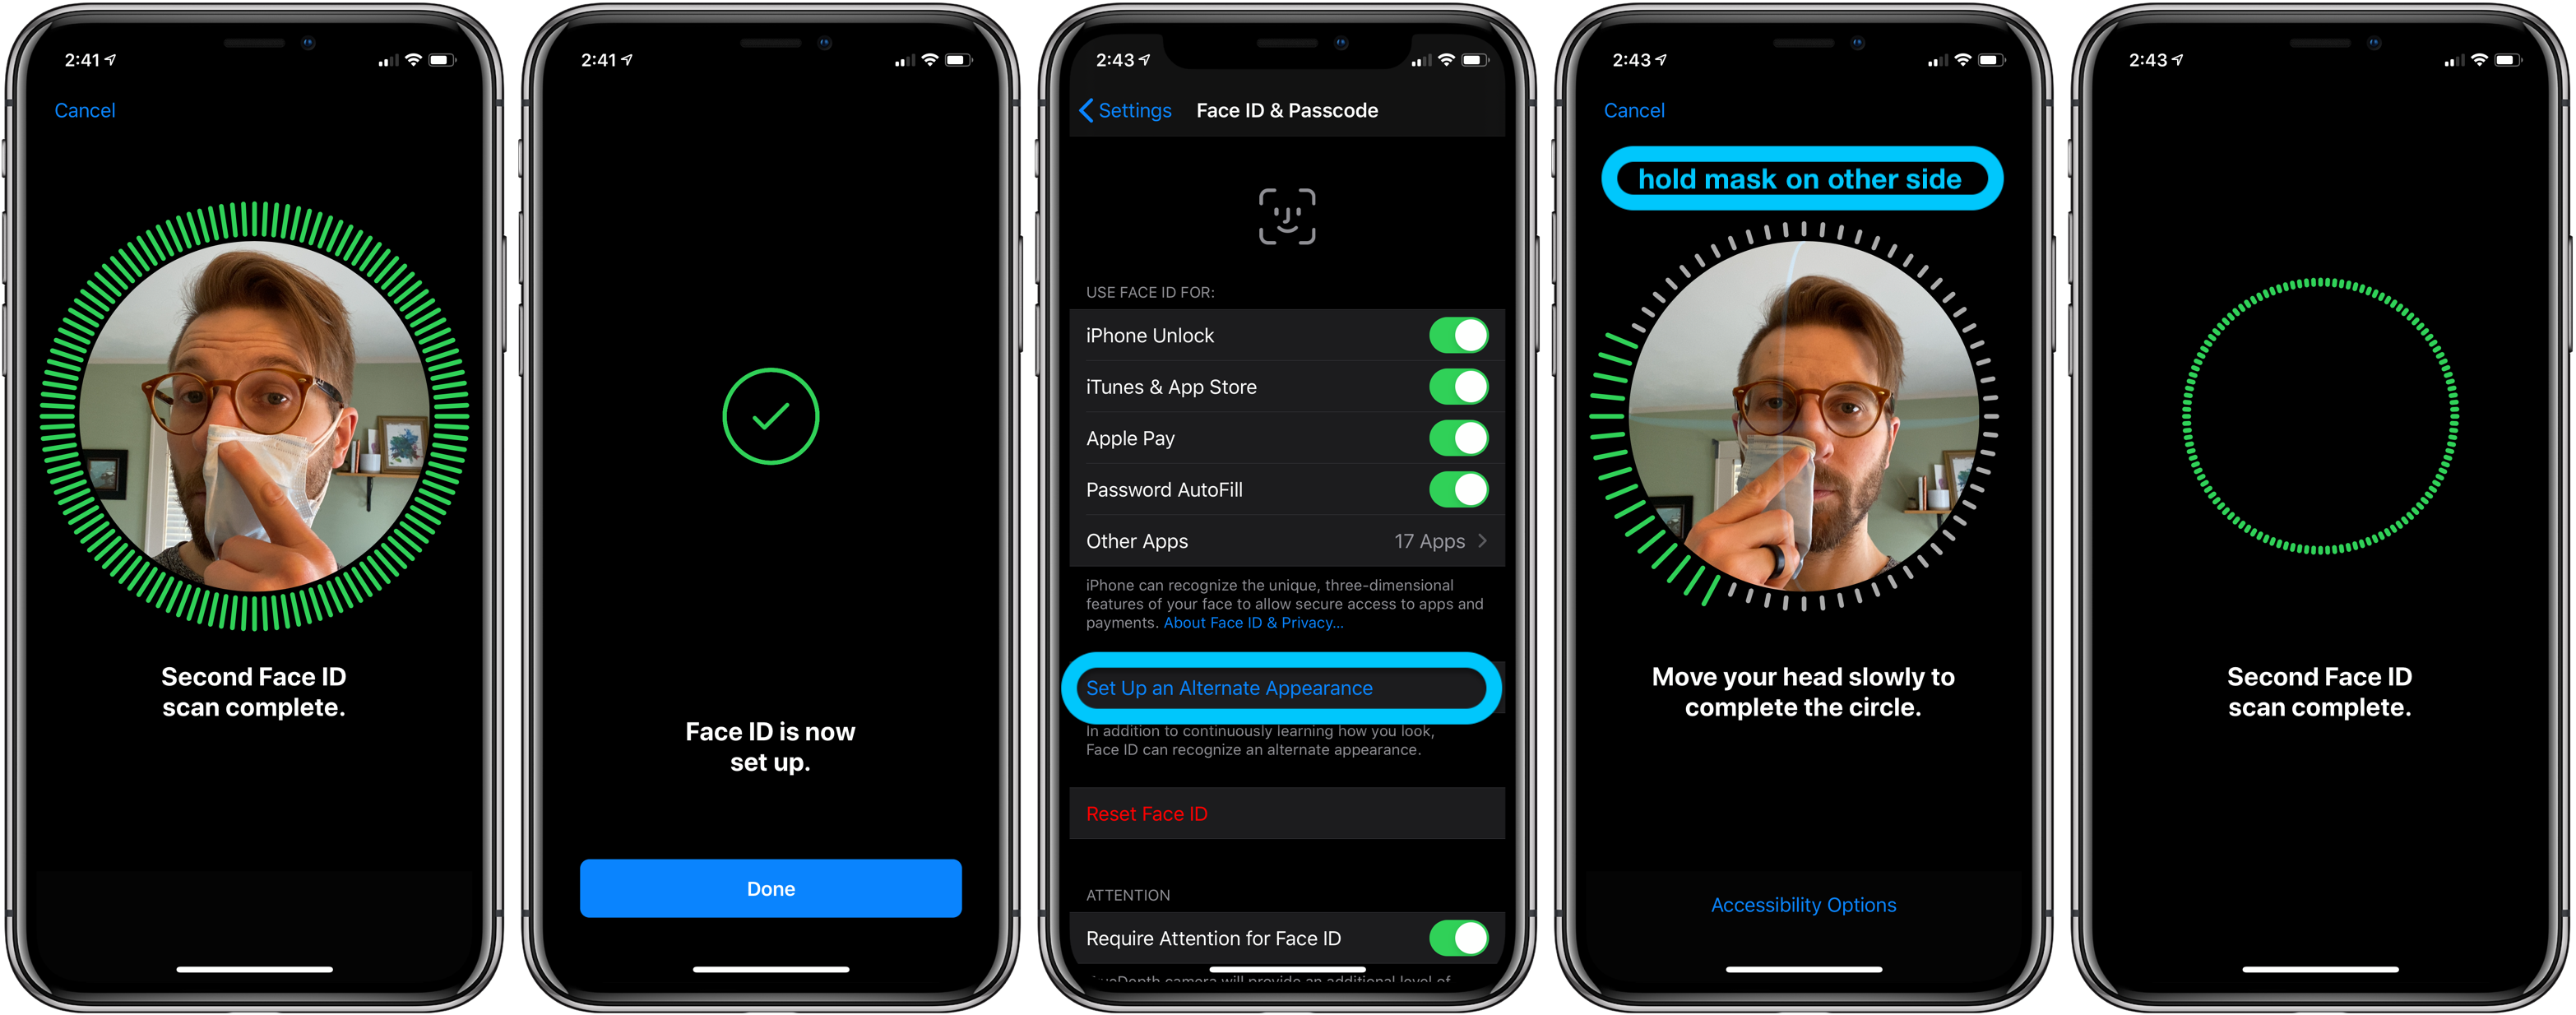 iPhone how to use Face ID with mask walkthrough 2